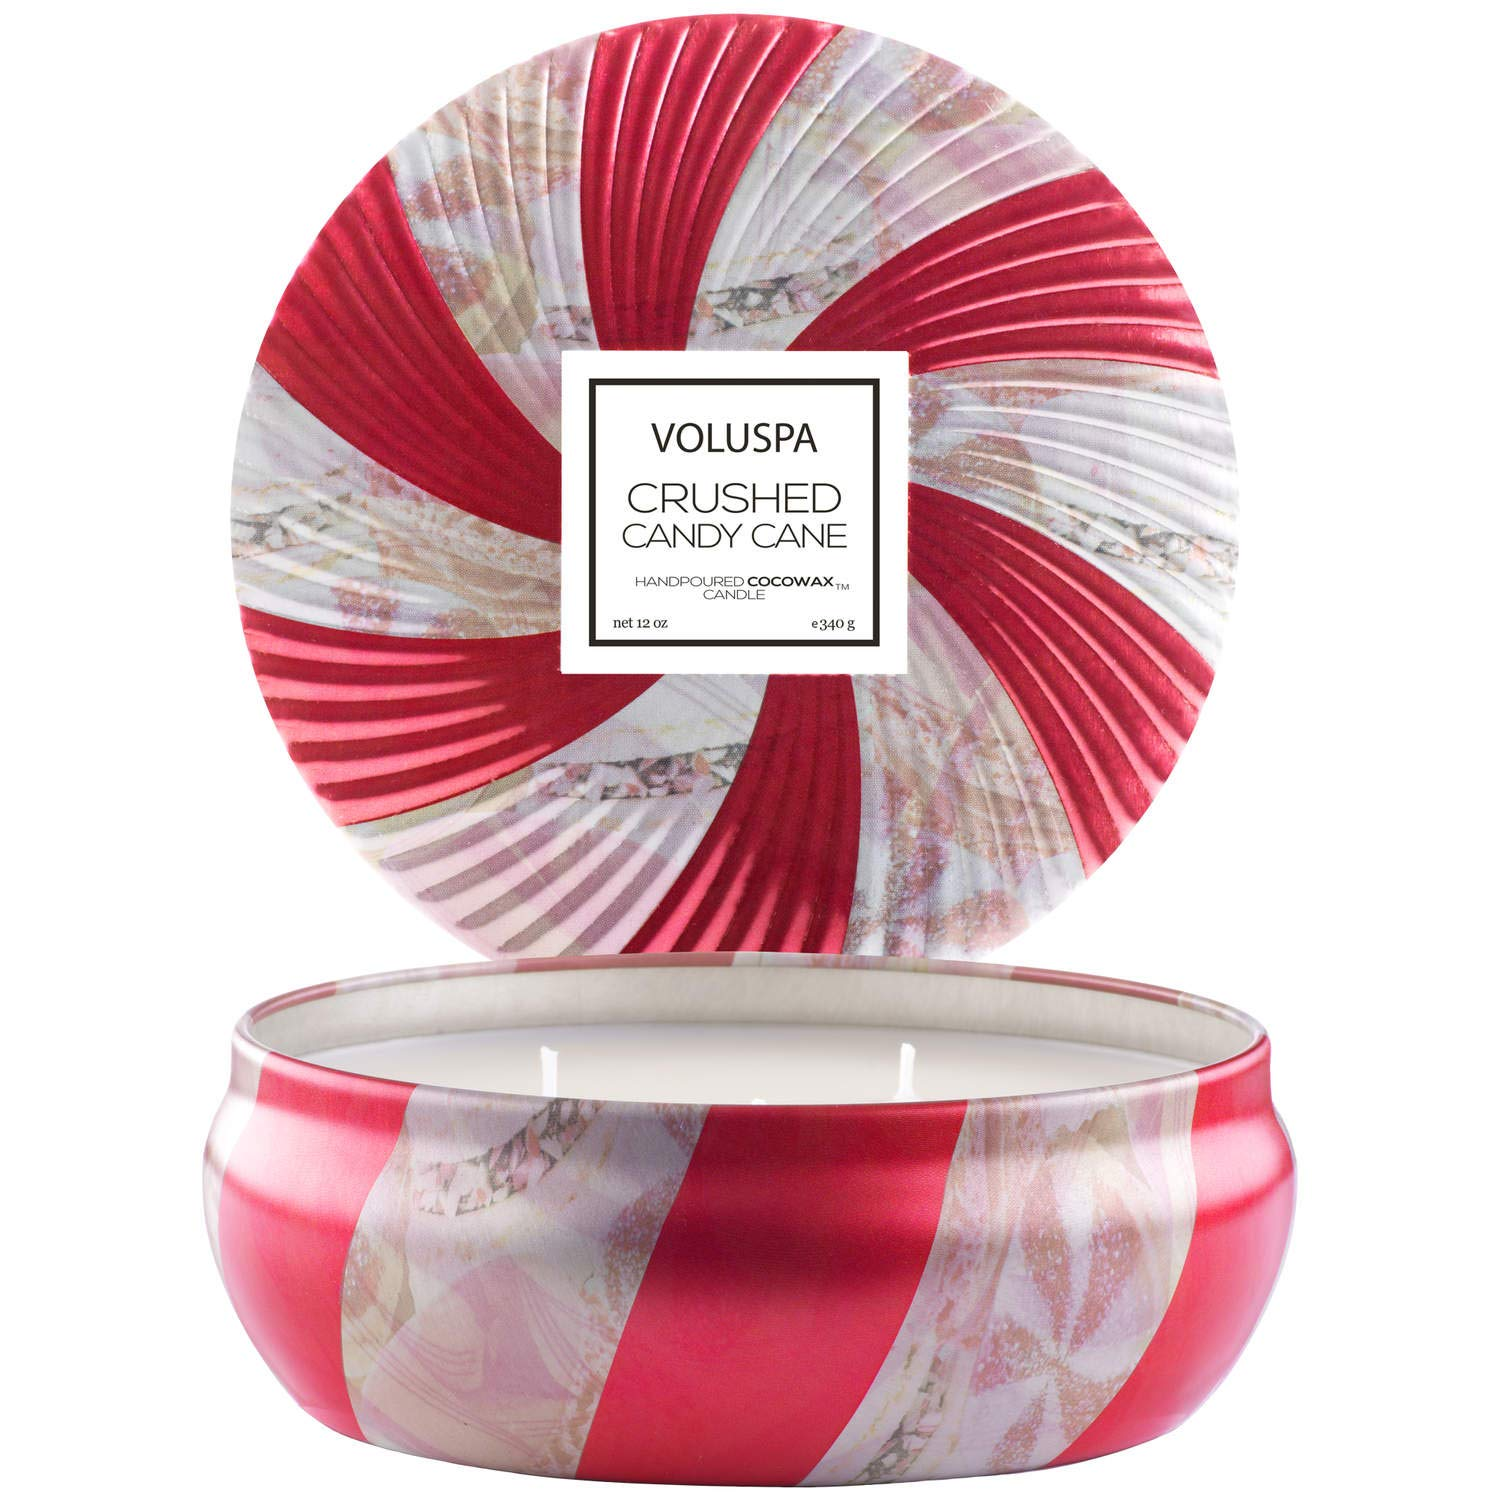 Voluspa Crushed Candy Cane 3 Wick Tin Candle